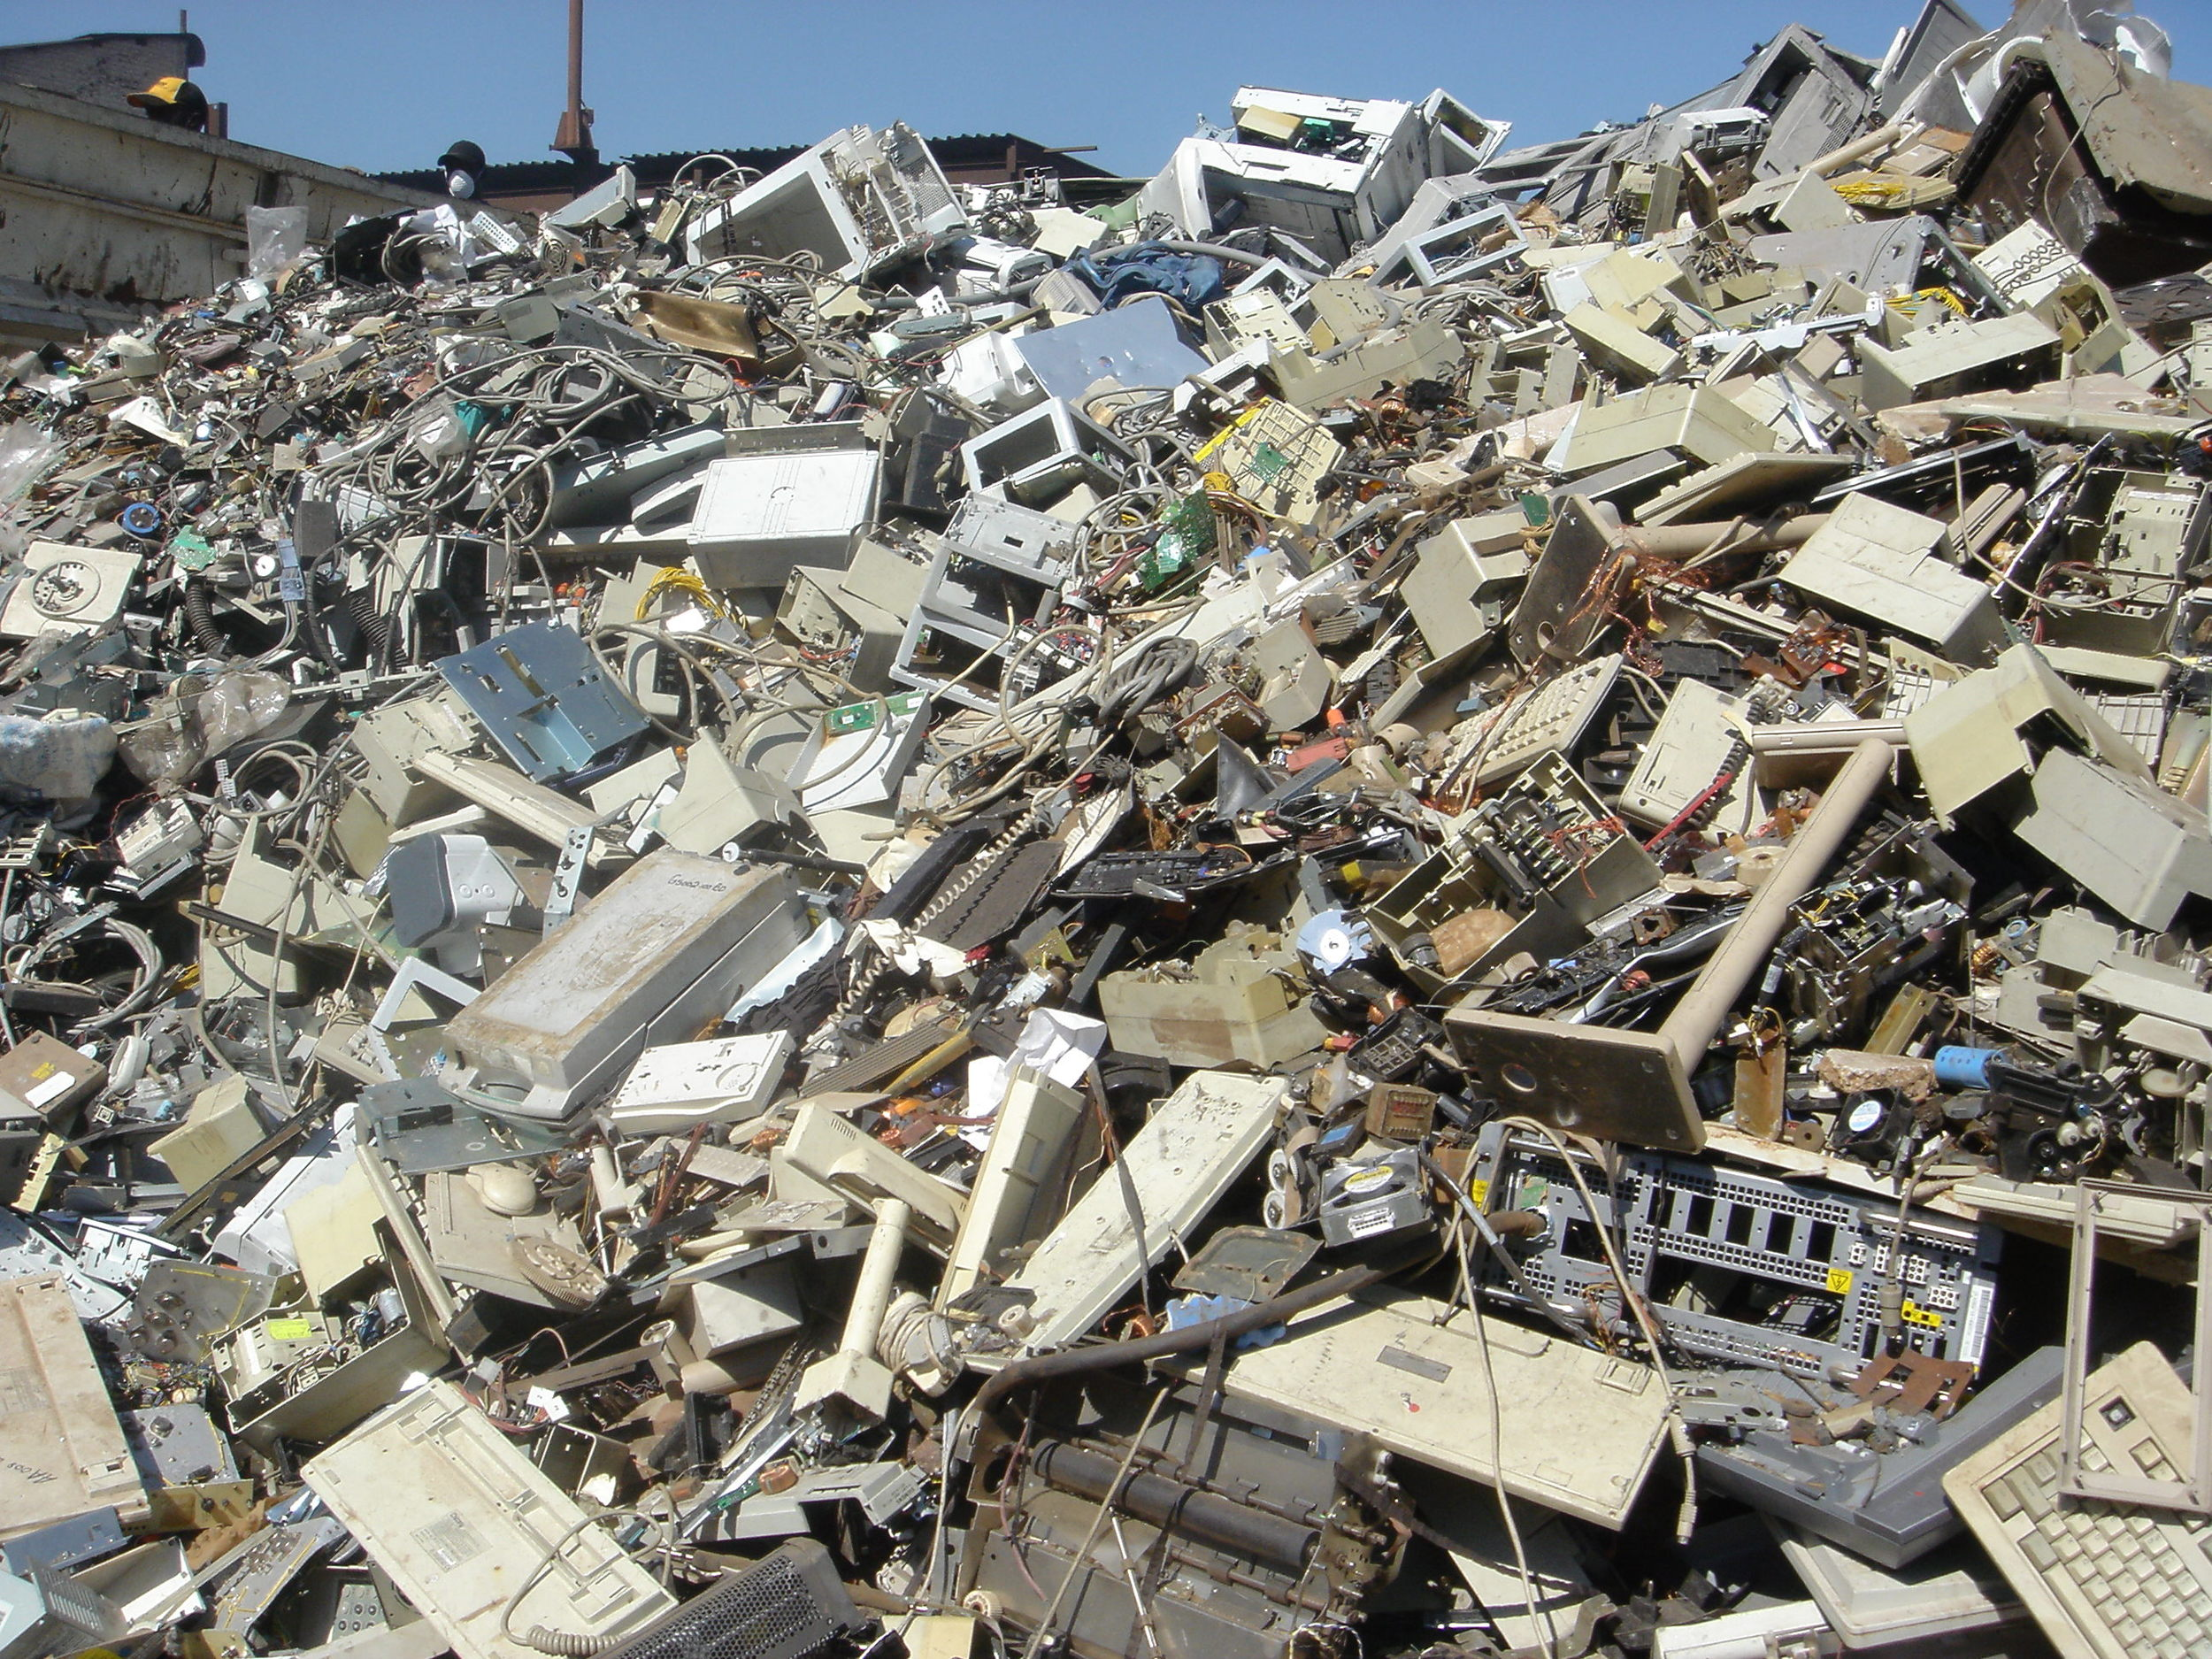 Don't wind up in the mobile technology landfill (image courtesy of  E Waste Guide )